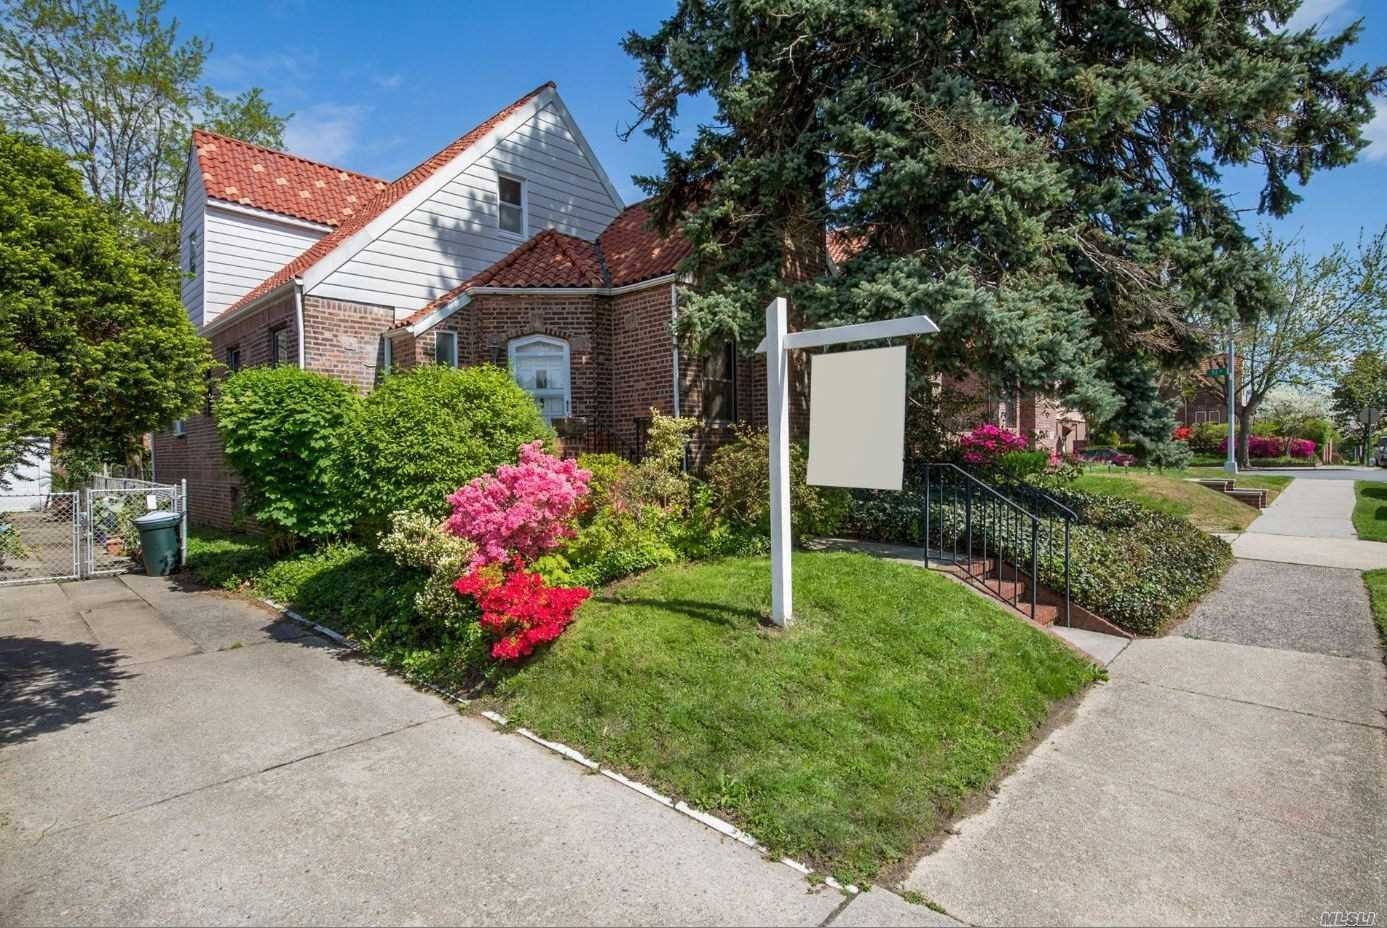 Welcome home to this brick tudor 1 family, vaulted celings and brick beams in lvingroom with firplace, large FDR, large kithen, master bedroom on 1st fl w/ add'l bedroom, 2nd fl-3 bdrms, 1 bath, large attic, full basement, 1.5 car garage, private yard. Home needs TLC.